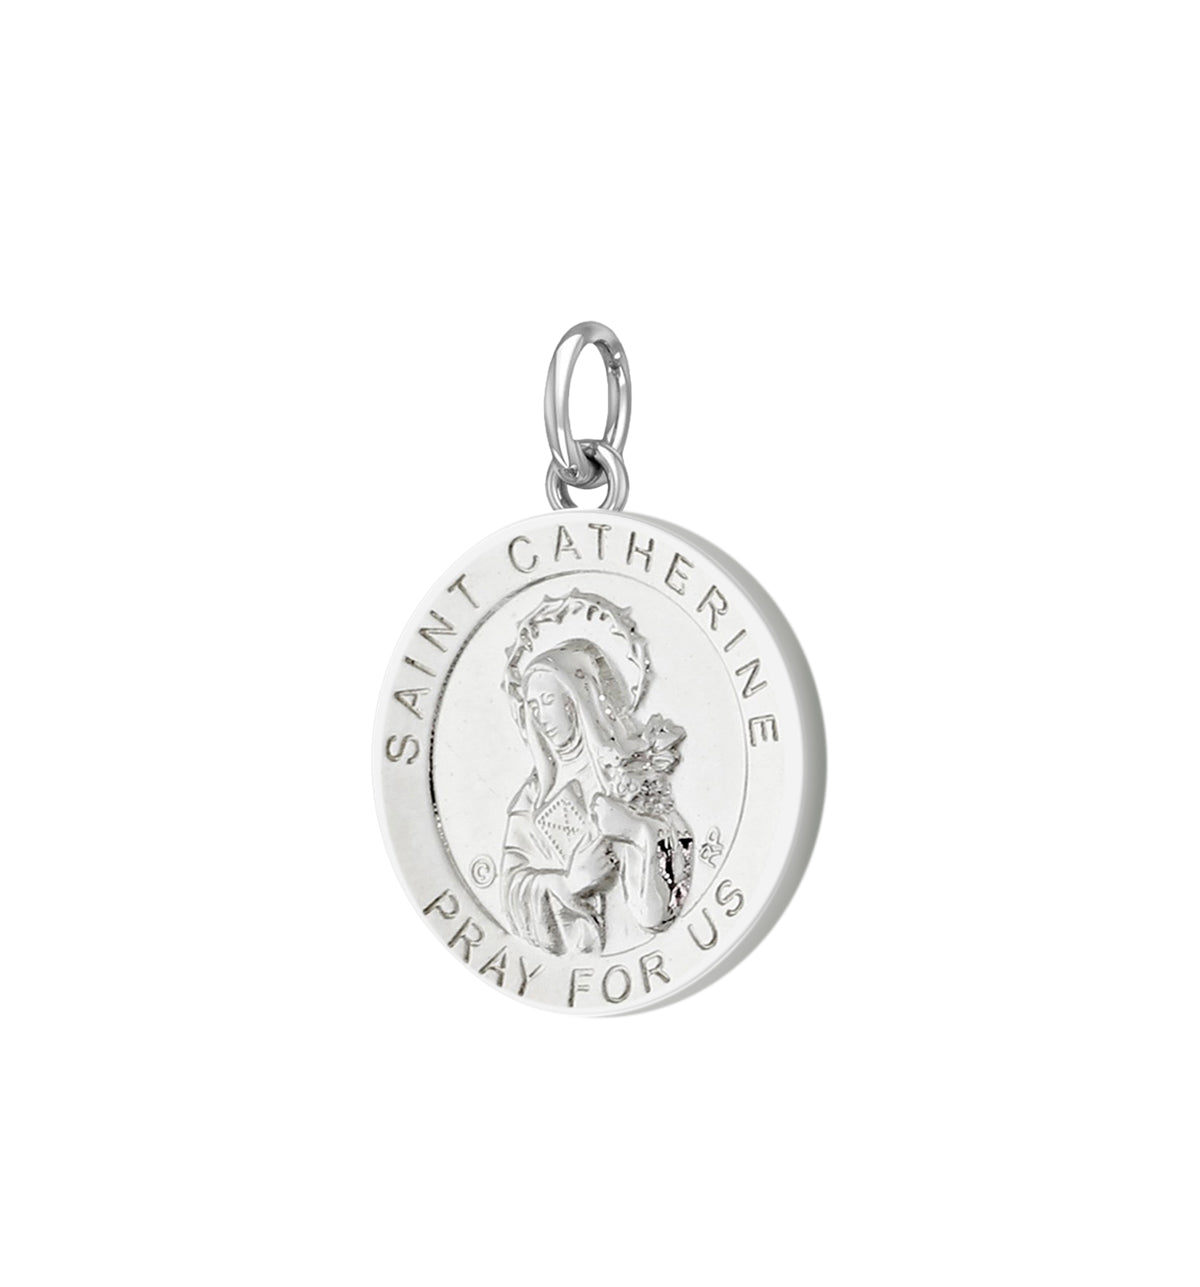 Pendant Necklace With Saint Catherine - No Chain